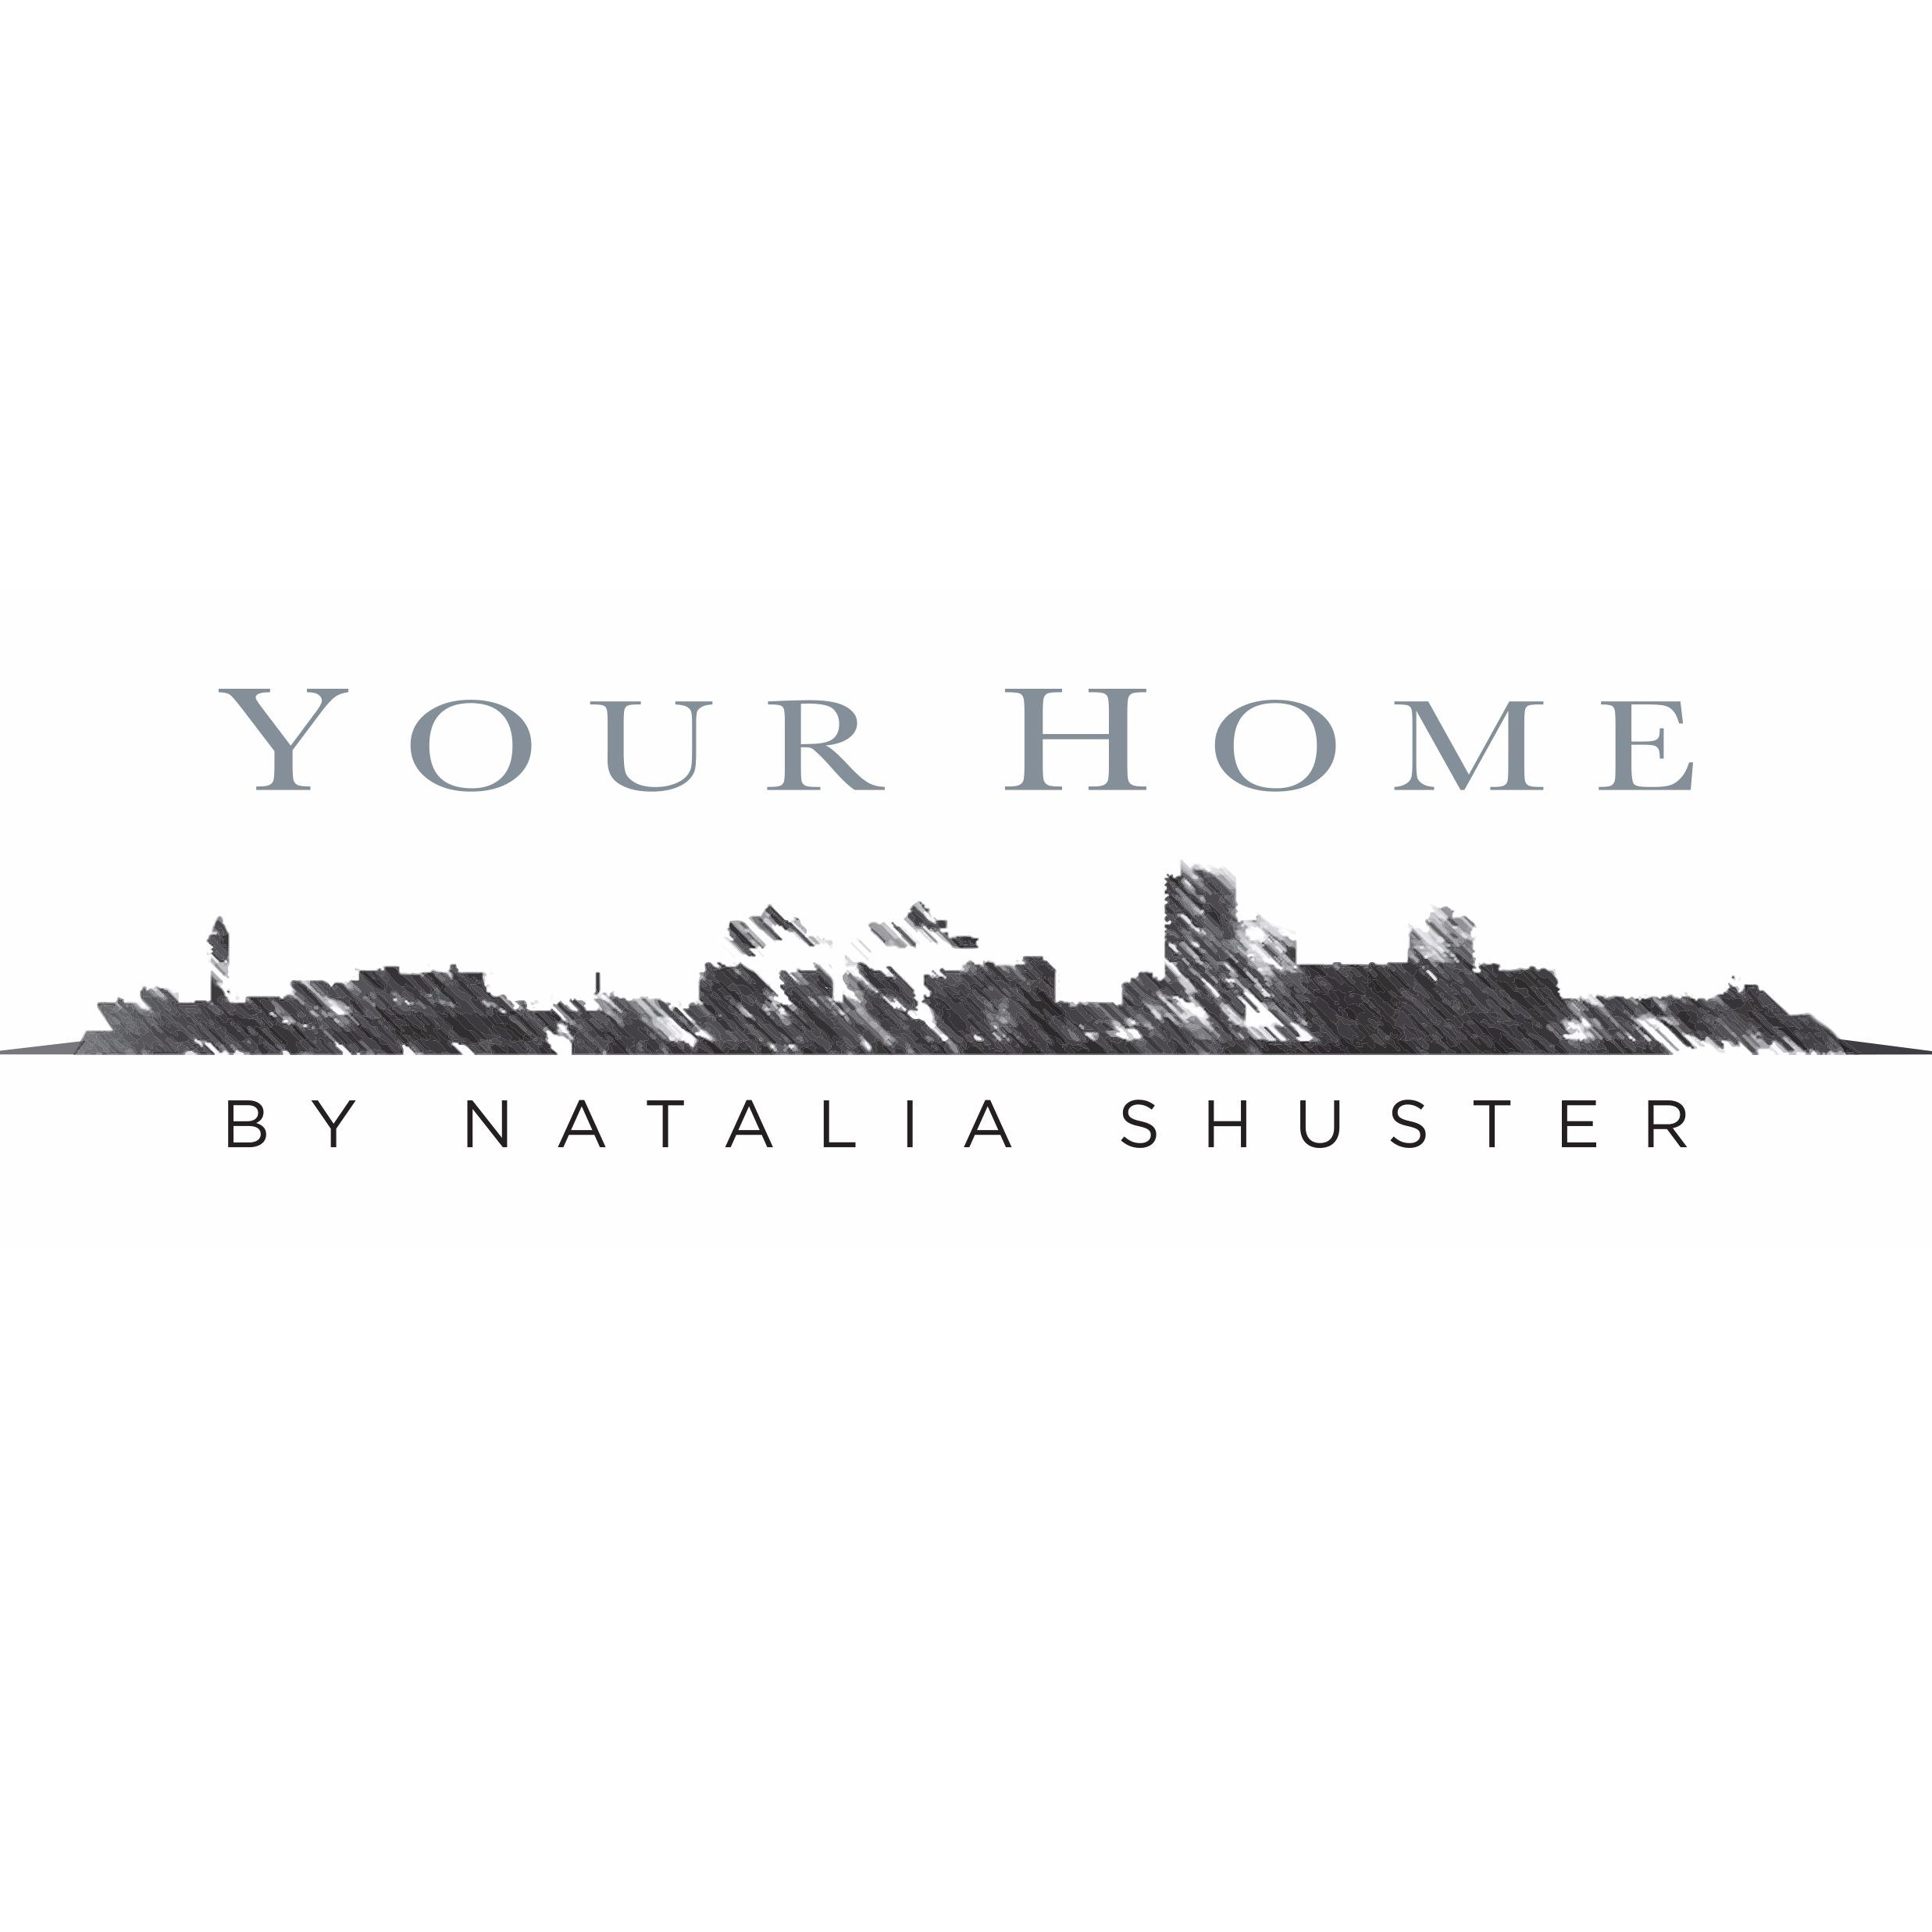 Your Home by Natalia Shuster - Hoboken, NJ 07030 - (917)361-3554 | ShowMeLocal.com